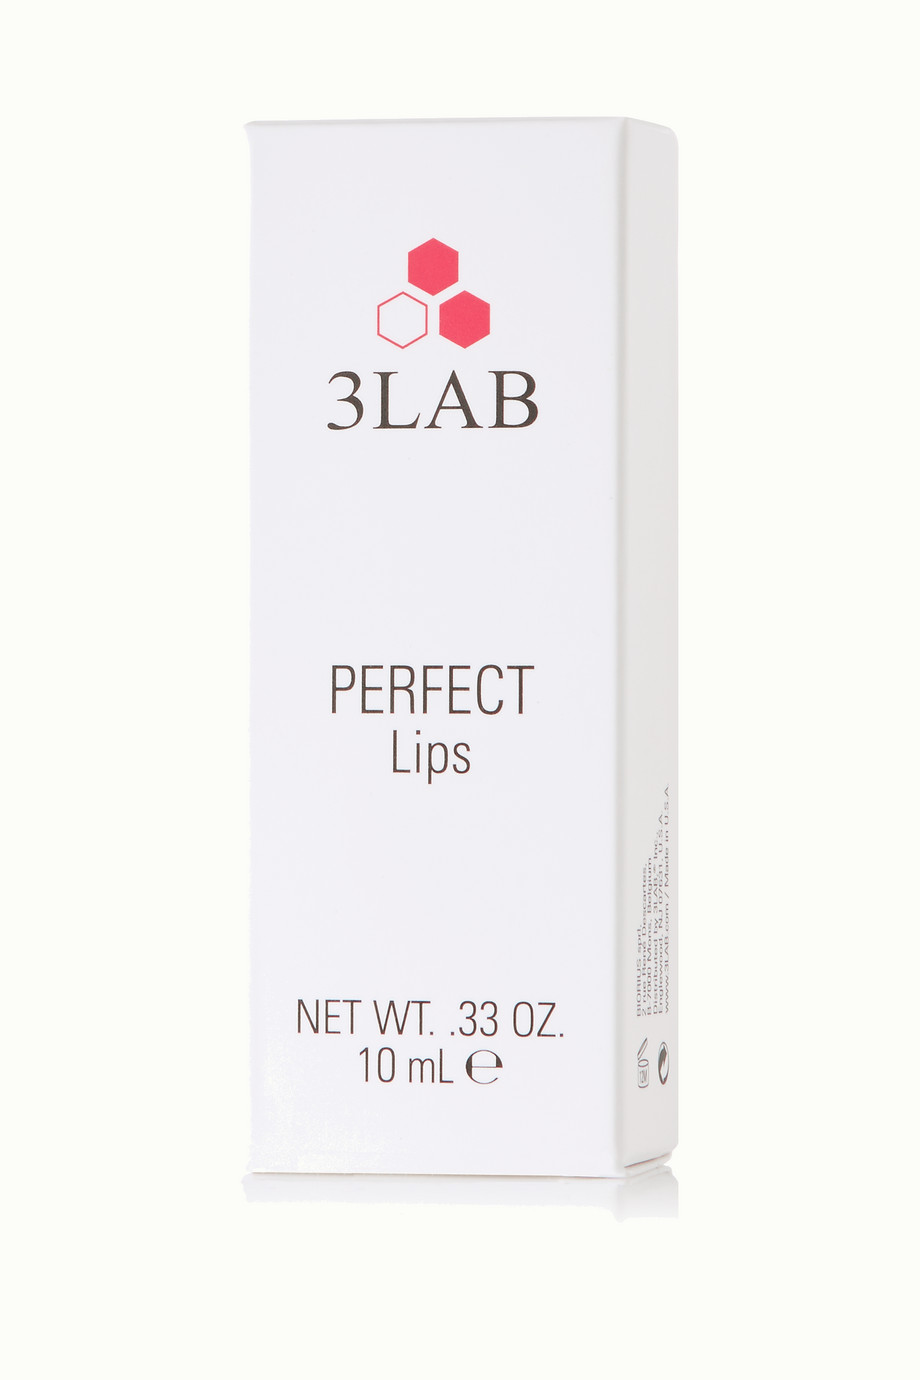 3LAB PERFECT Lips, 10 ml – Lippenpflege